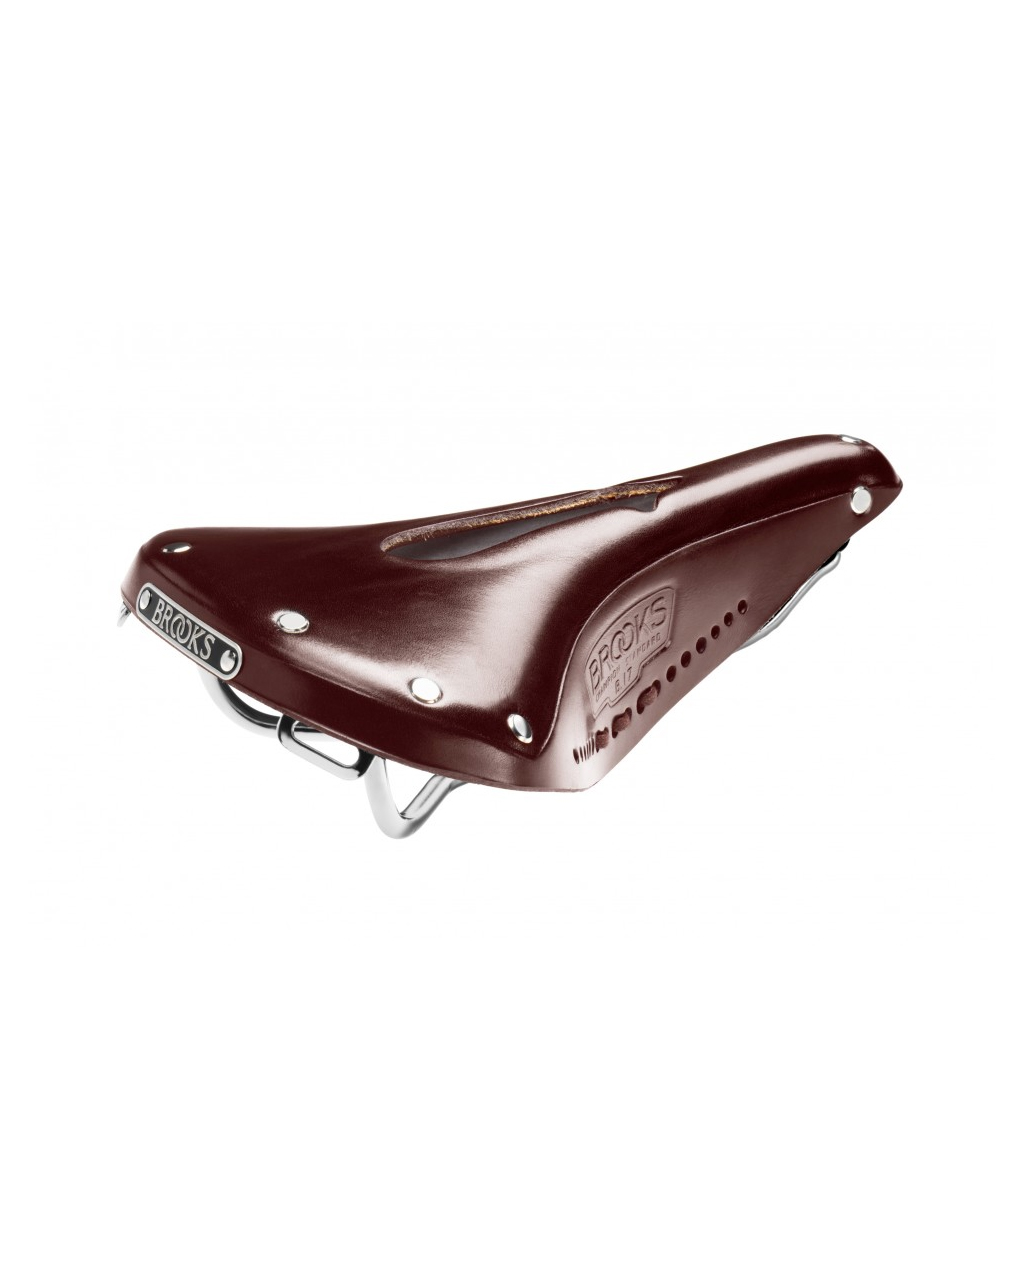 Brooks B17S Imperial - Brown